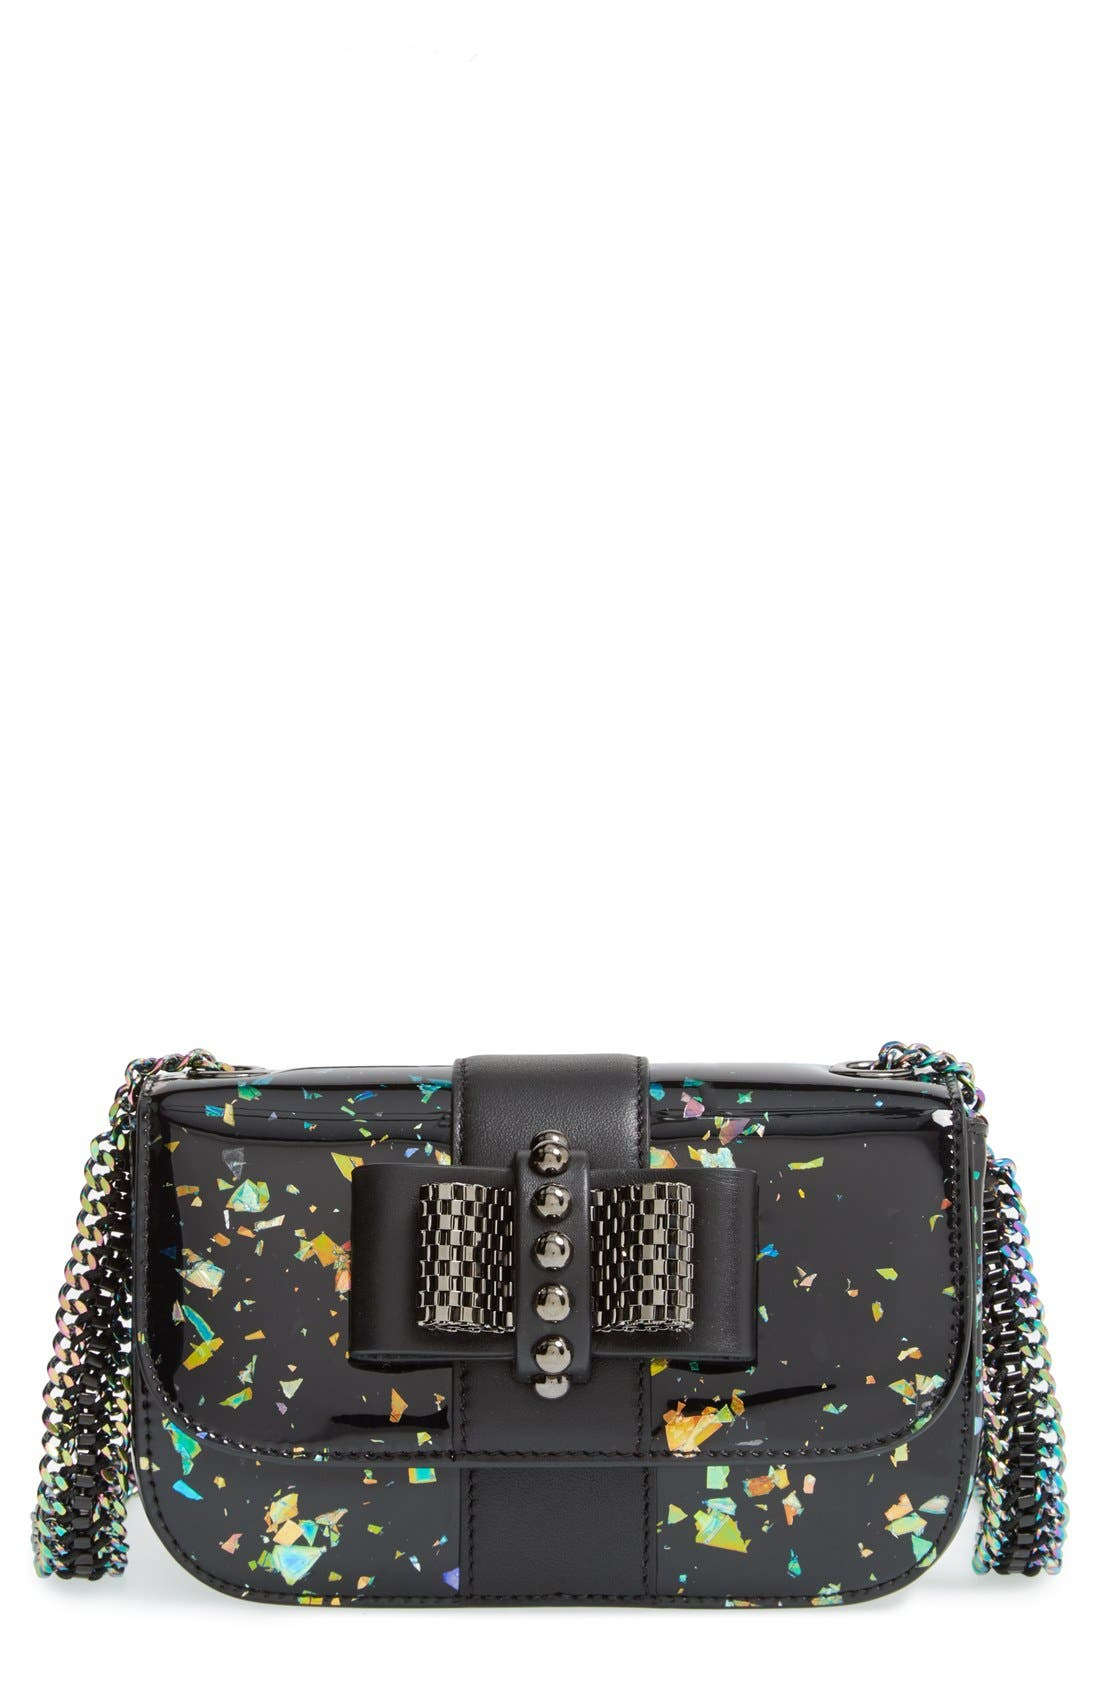 Alternate Image 1 Selected - Christian Louboutin 'Sweety Charity' Patent Leather Shoulder Bag